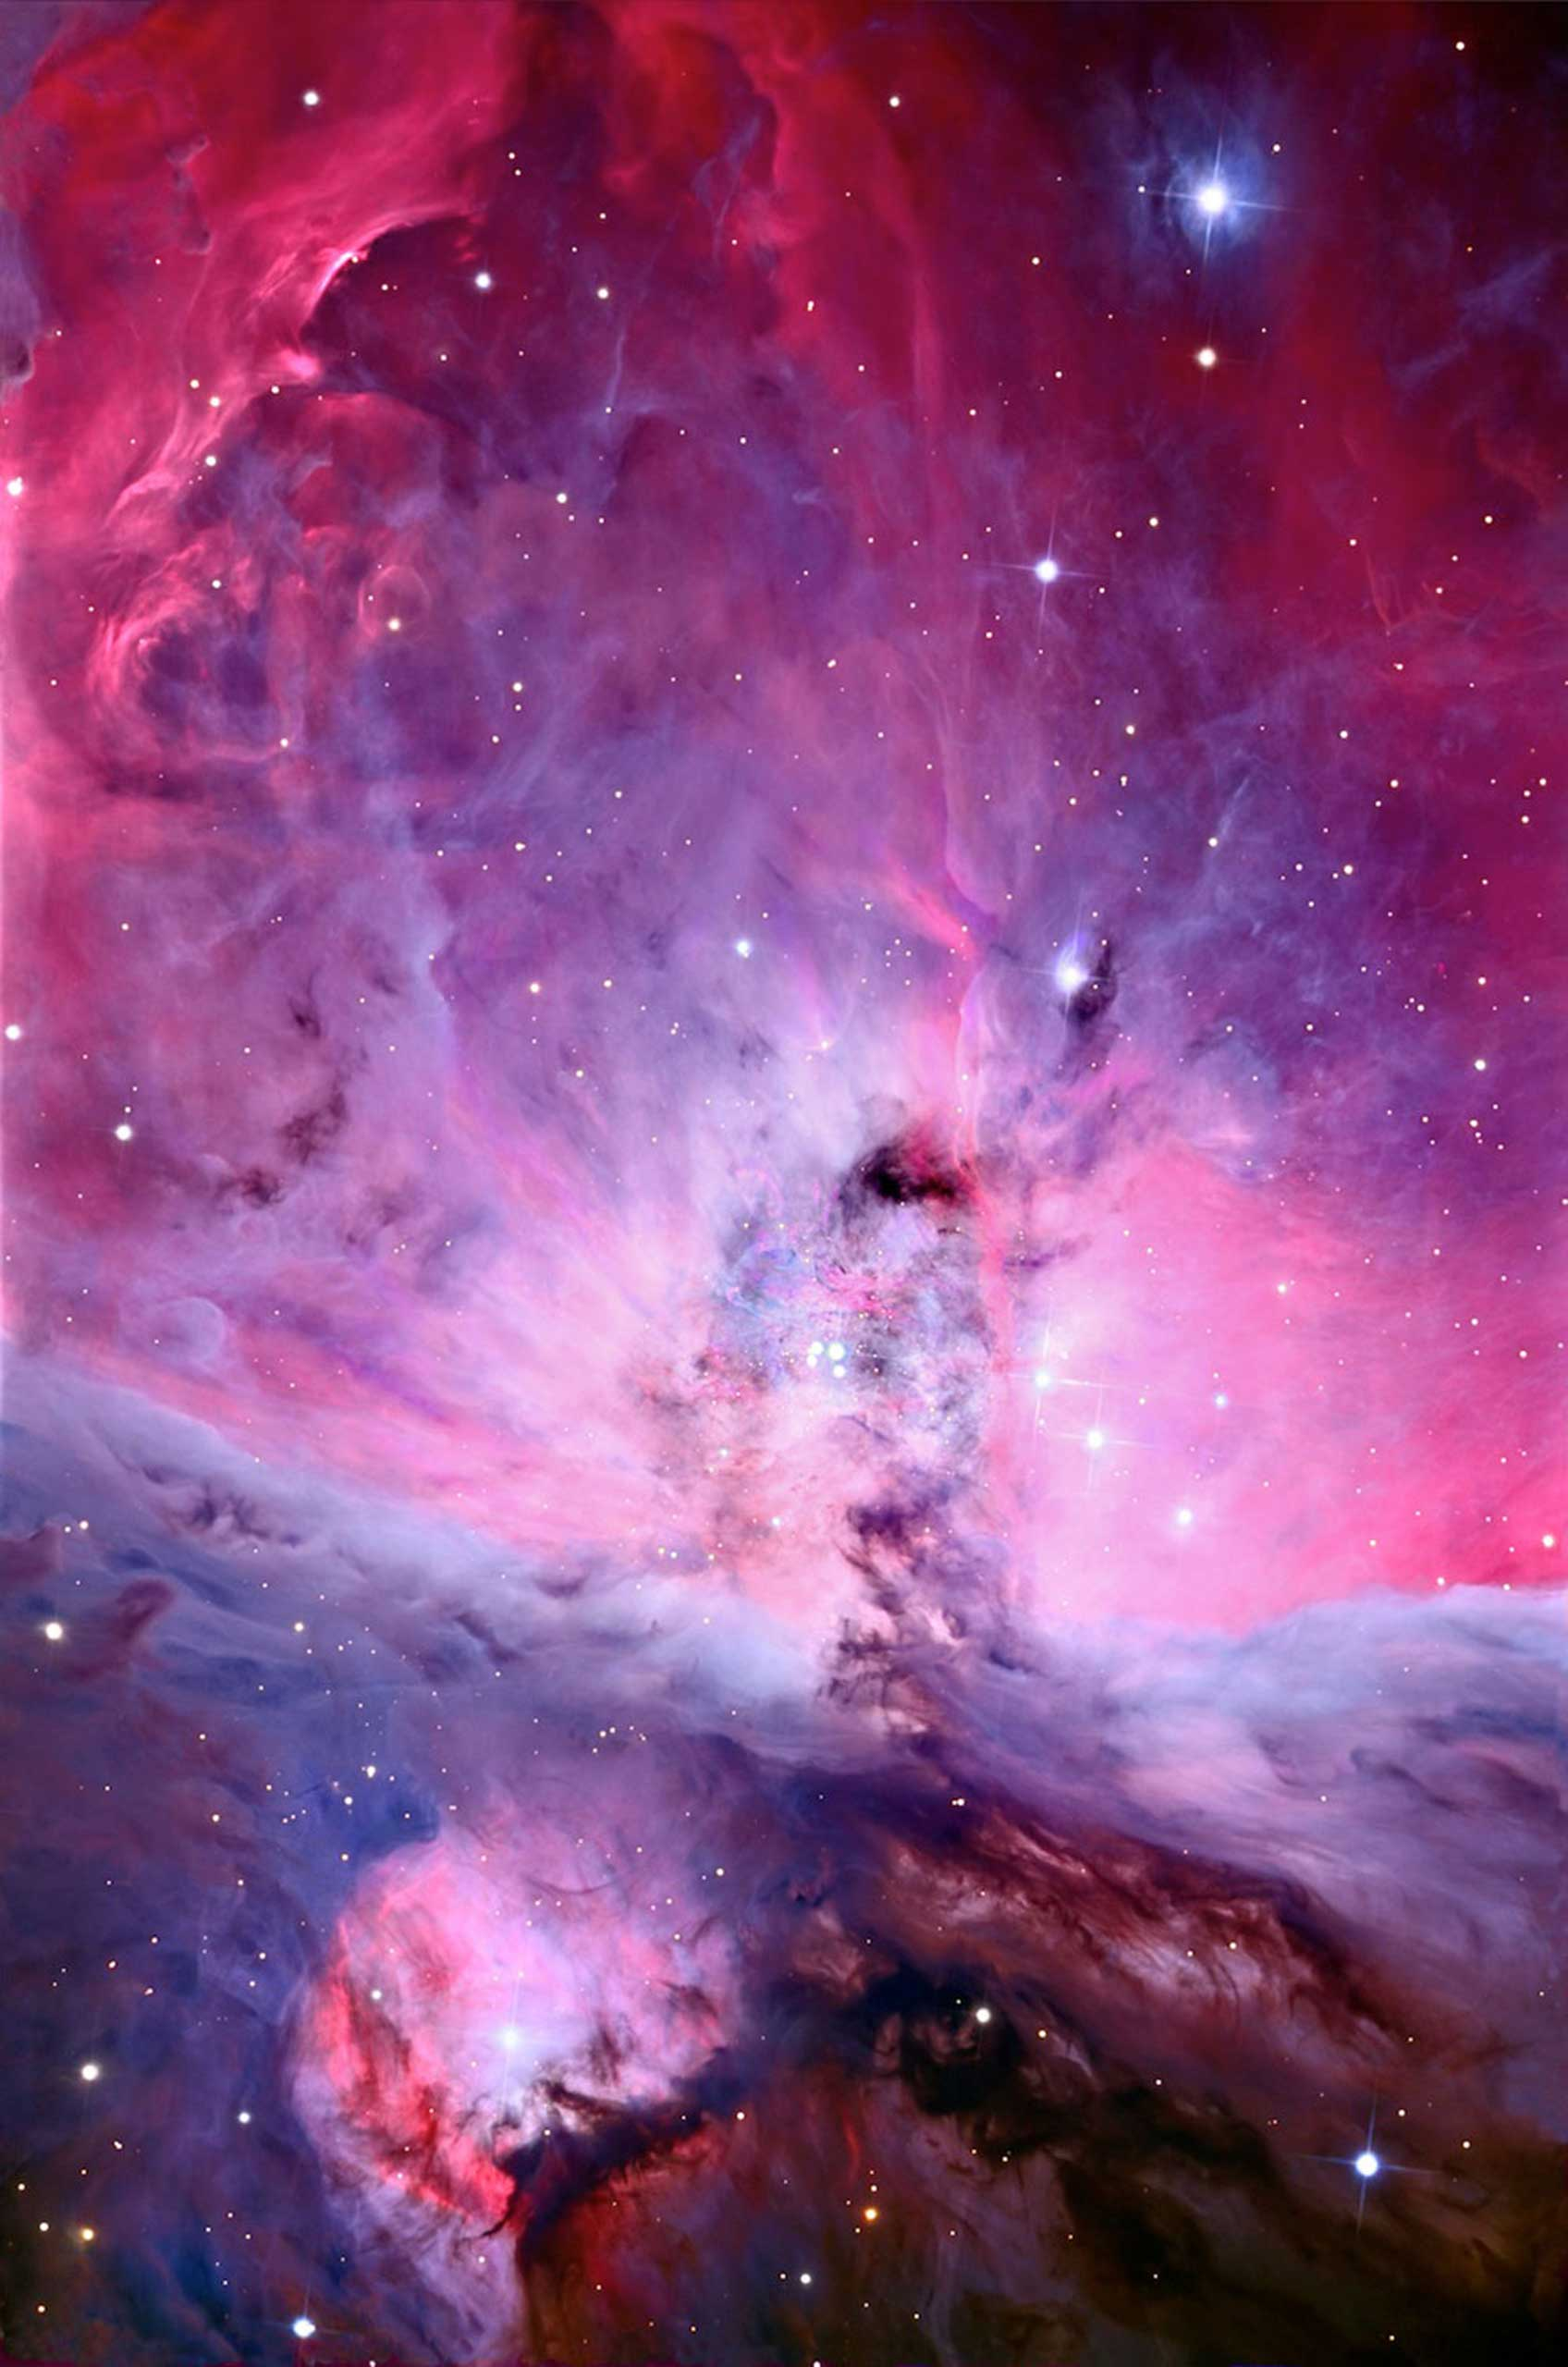 Orion nebula's center, a cloud of gas and dust known more prosaically as M42.